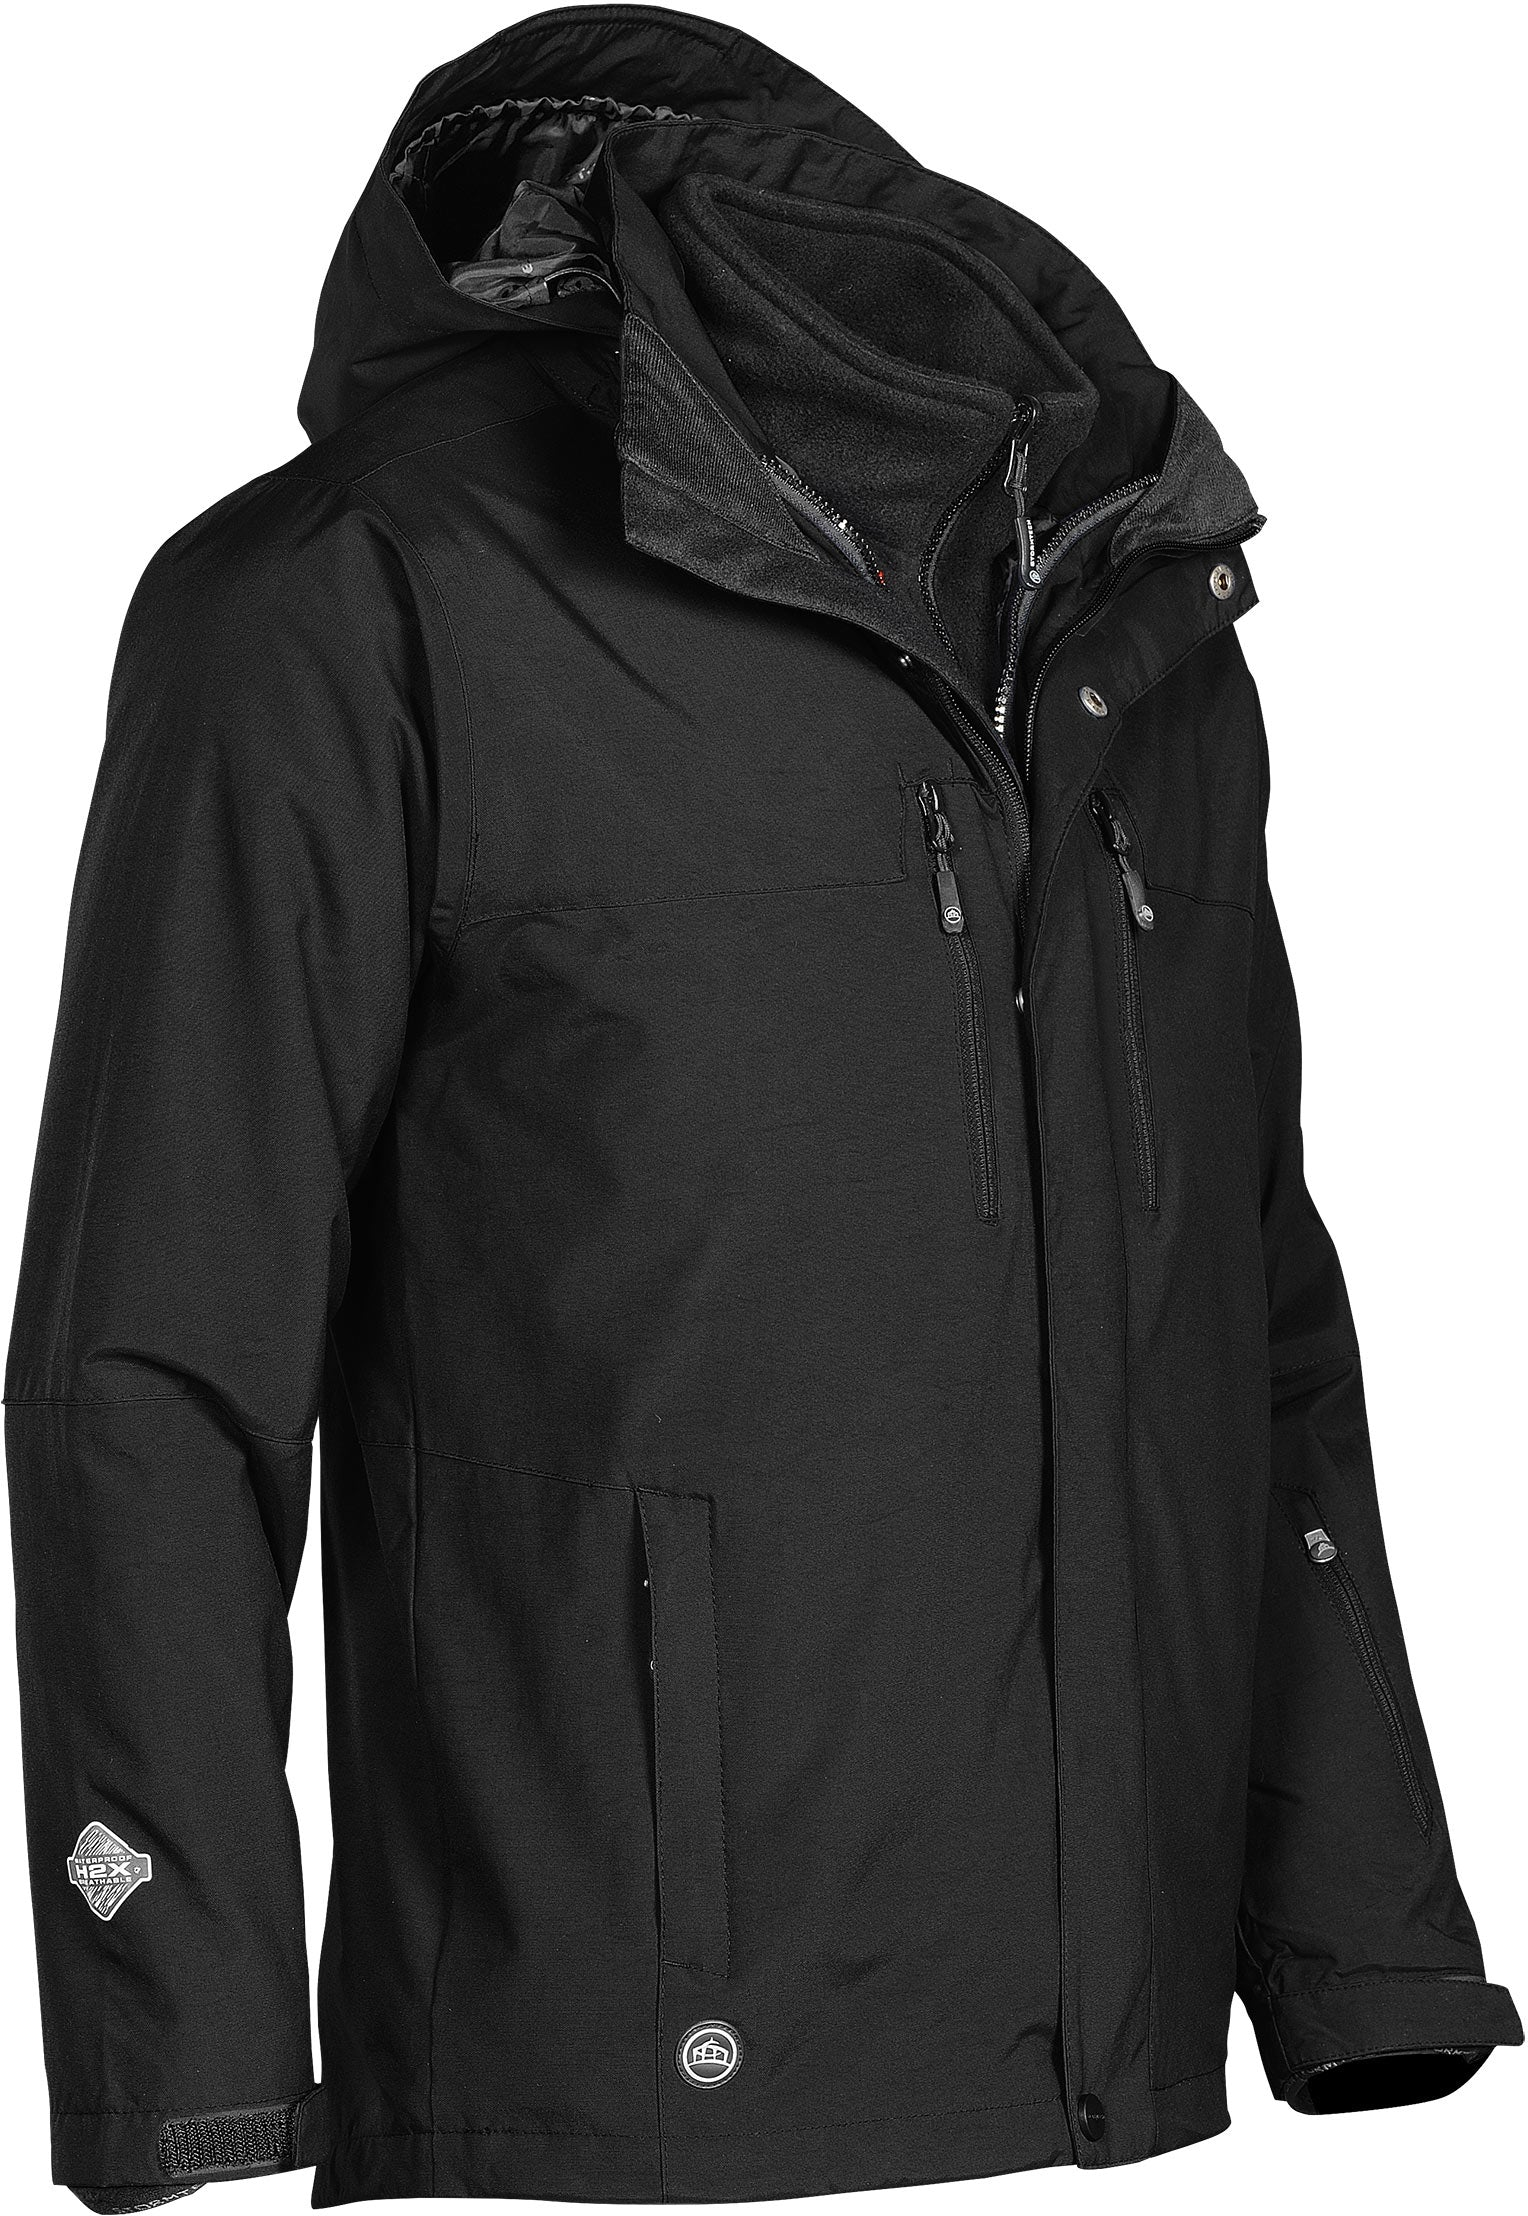 STORMTECH MEN'S RANGER 3-IN-1 SYSTEM JACKET